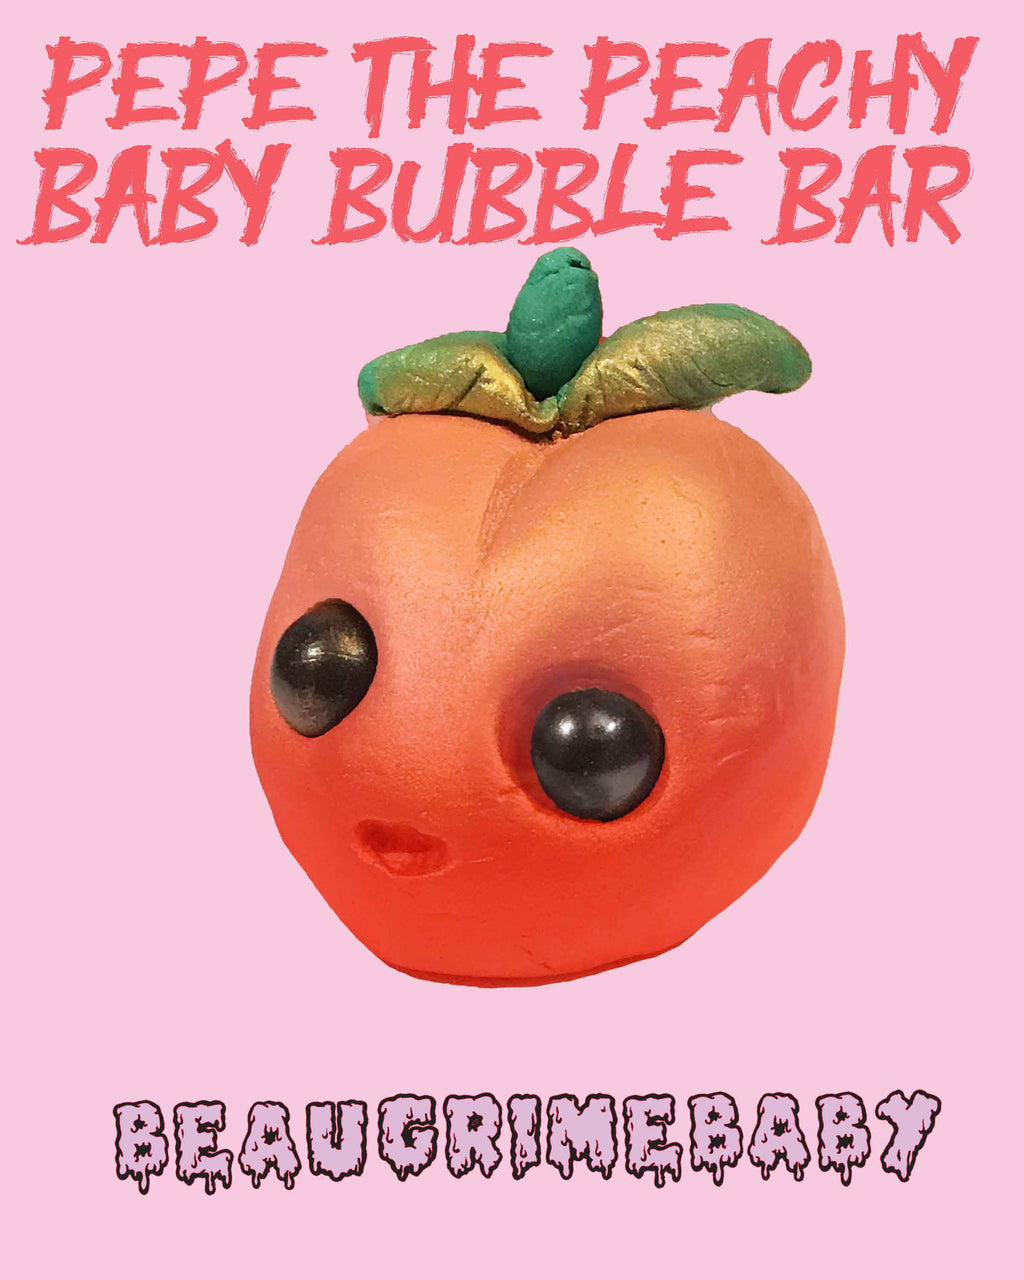 Pepe The Peachy Baby